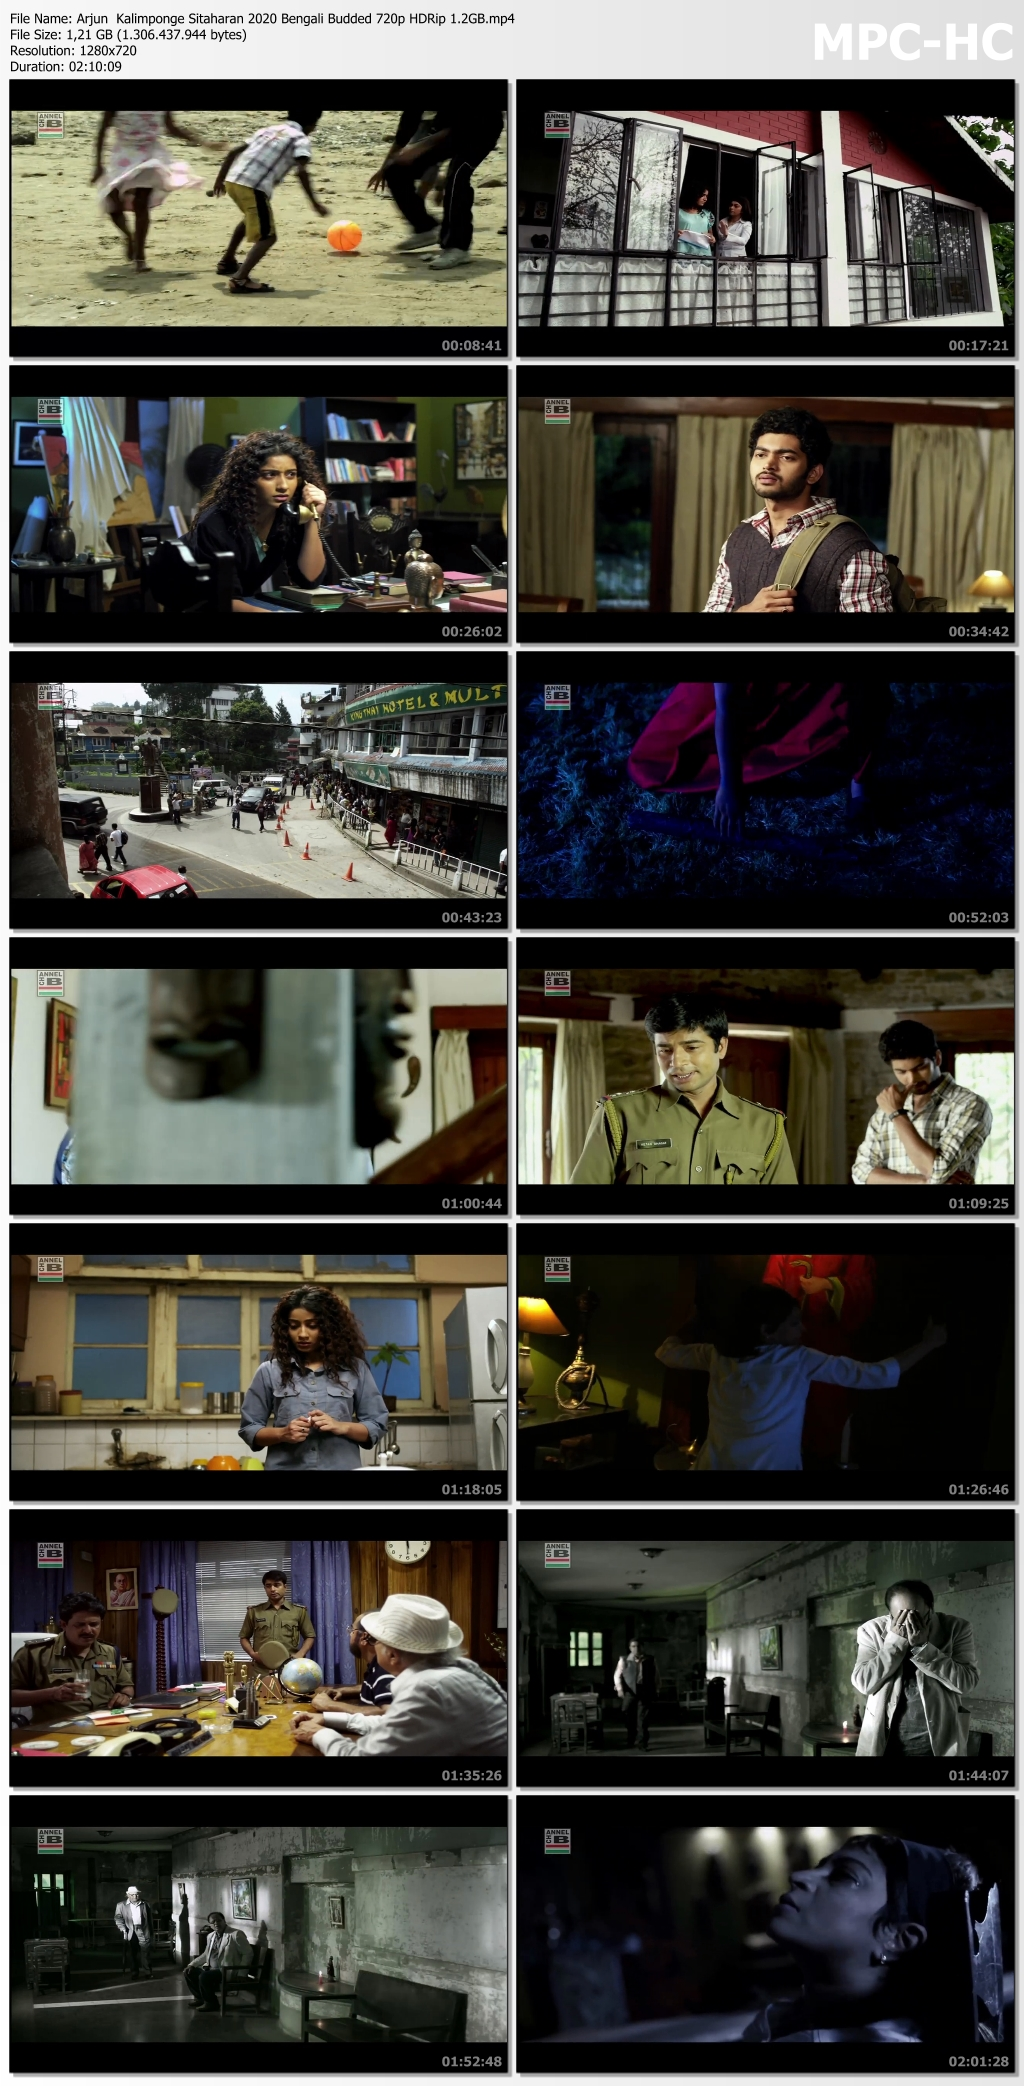 Arjun-Kalimponge-Sitaharan-2020-Bengali-Budded-720p-HDRip-1-2-GB-mp4-thumbs